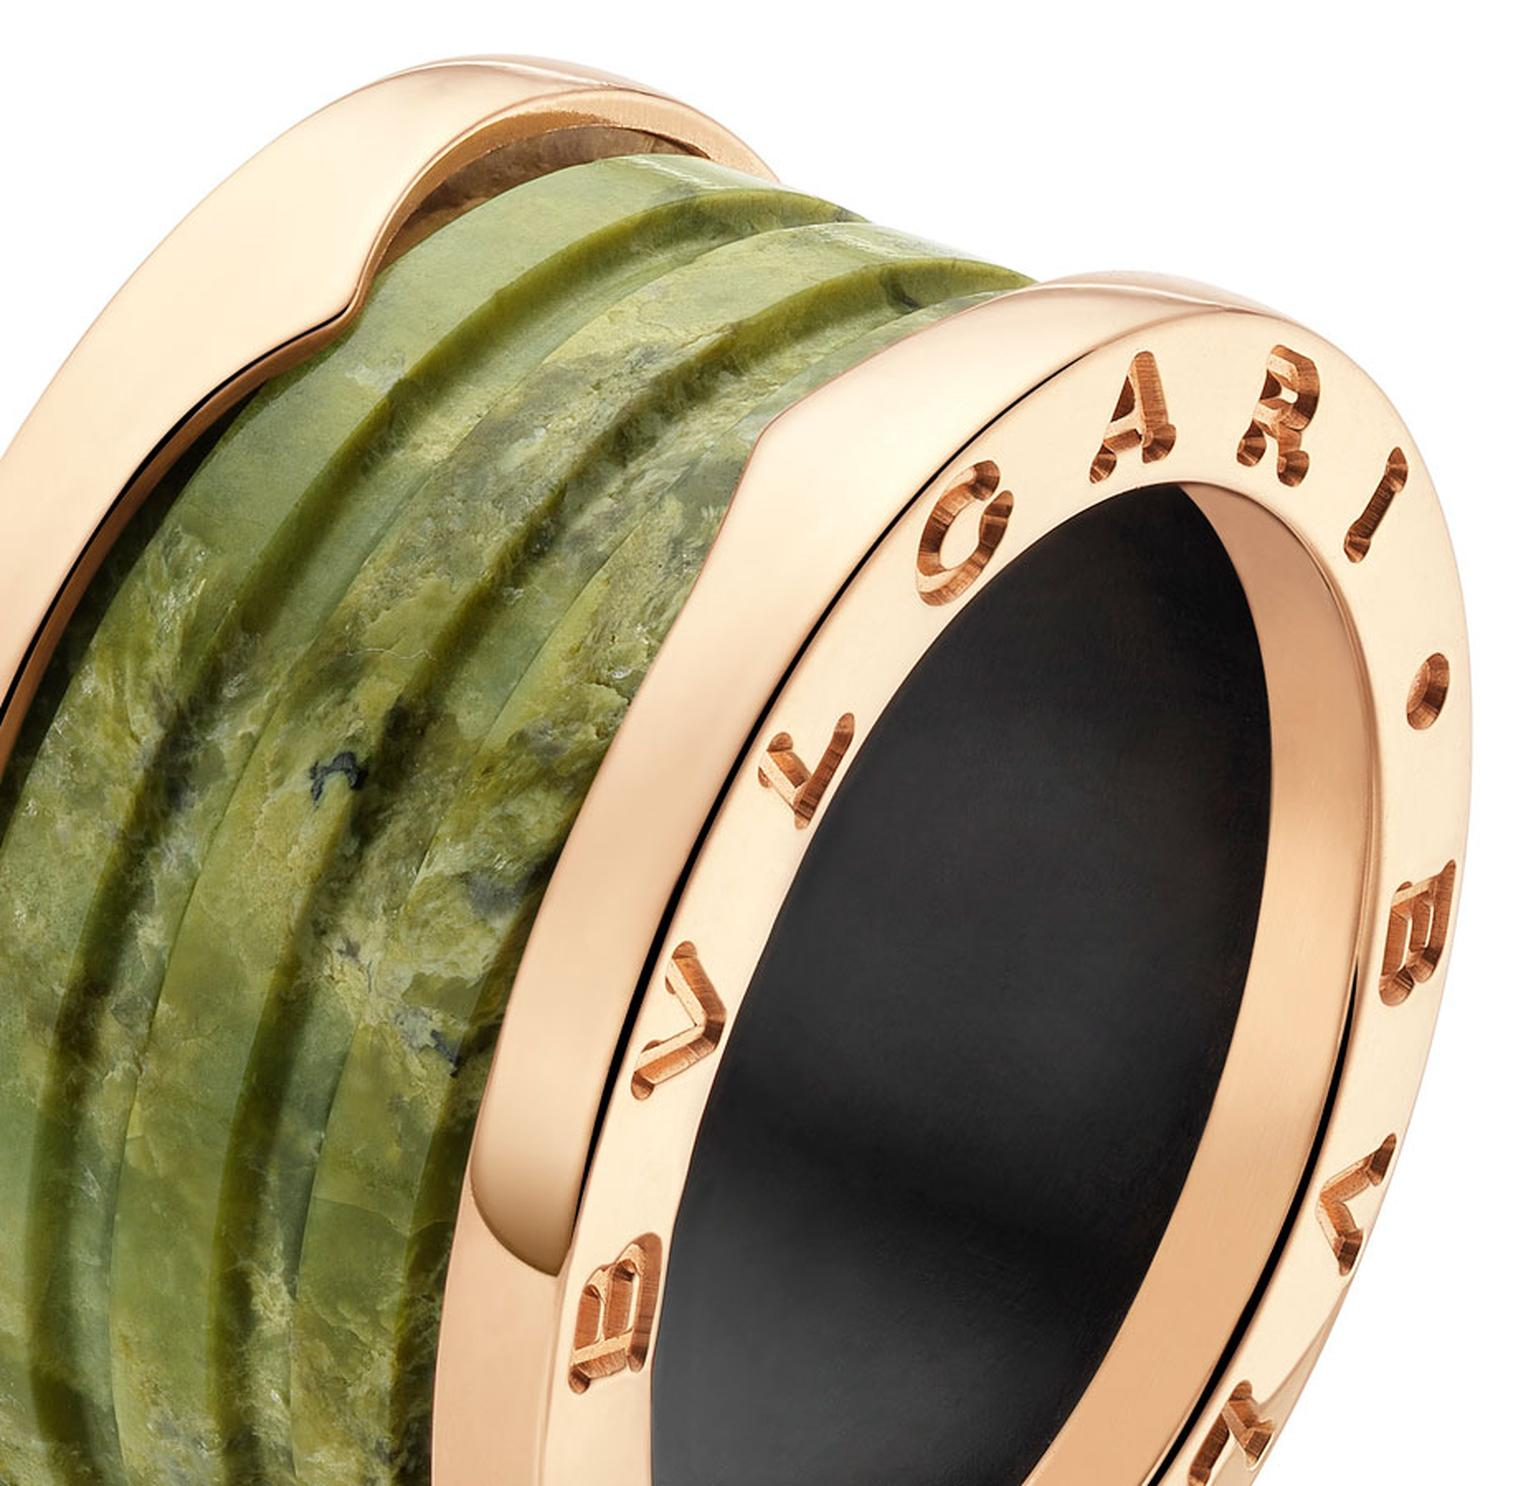 Bulgari Bzero1 pink gold and green marble 4-band ring _ 790 GBP. MAIN PIC